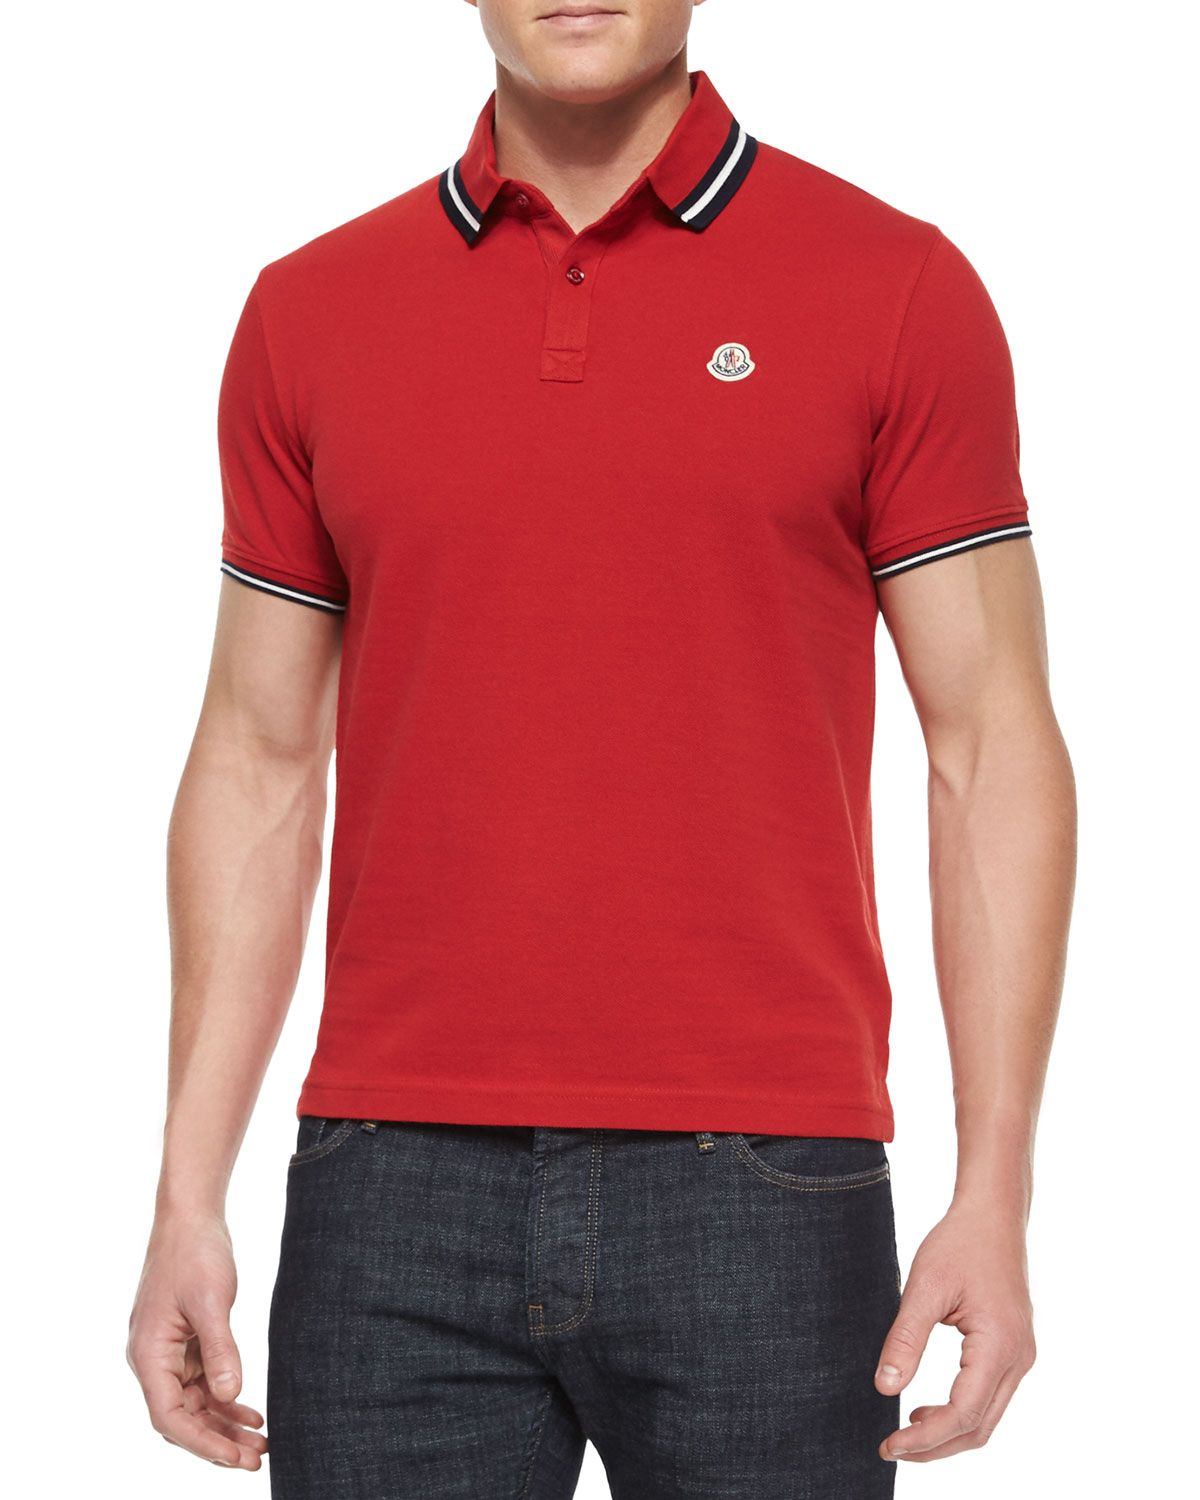 a75e01879 Short-Sleeve Tape-Tipped Polo Shirt Red | *Clothing > Shirts & Tops ...